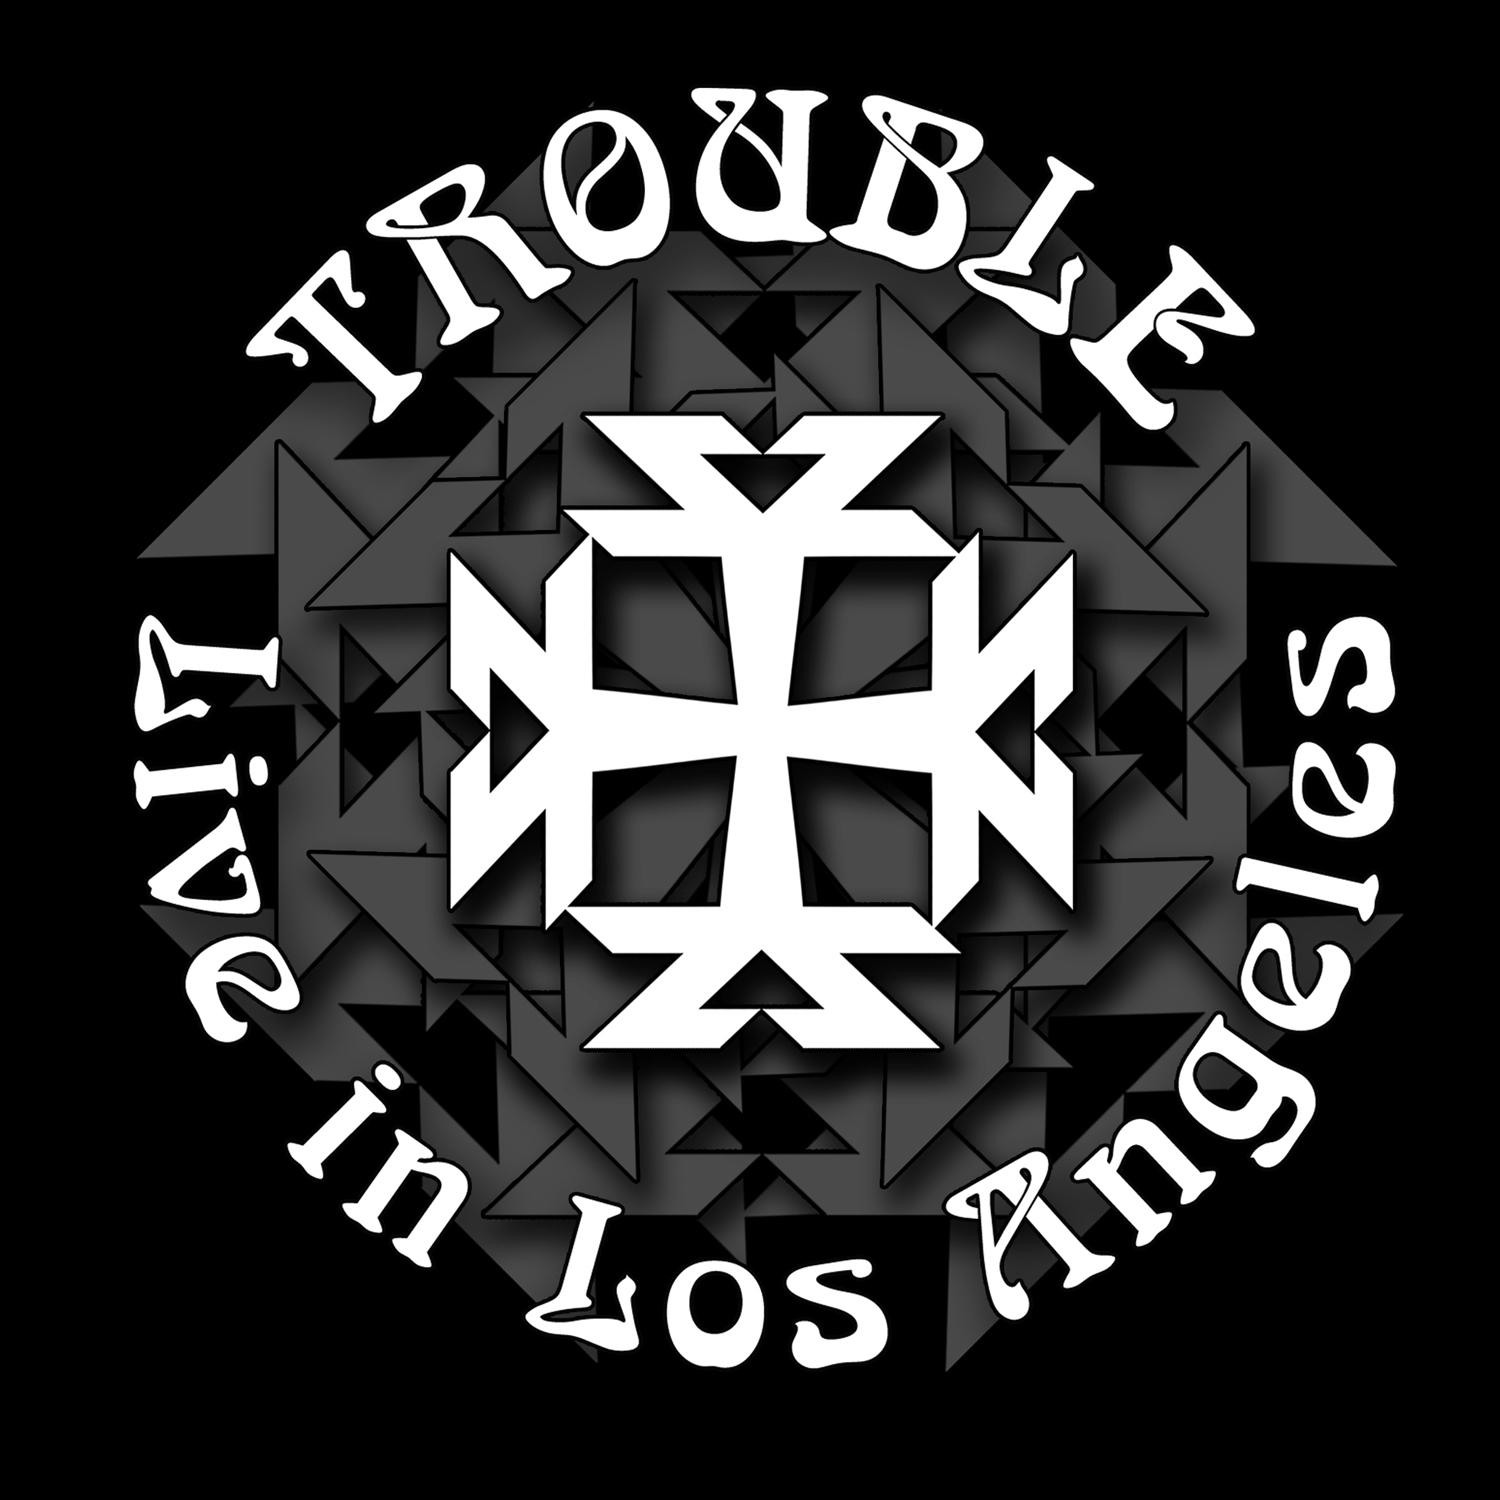 Trouble, cover art